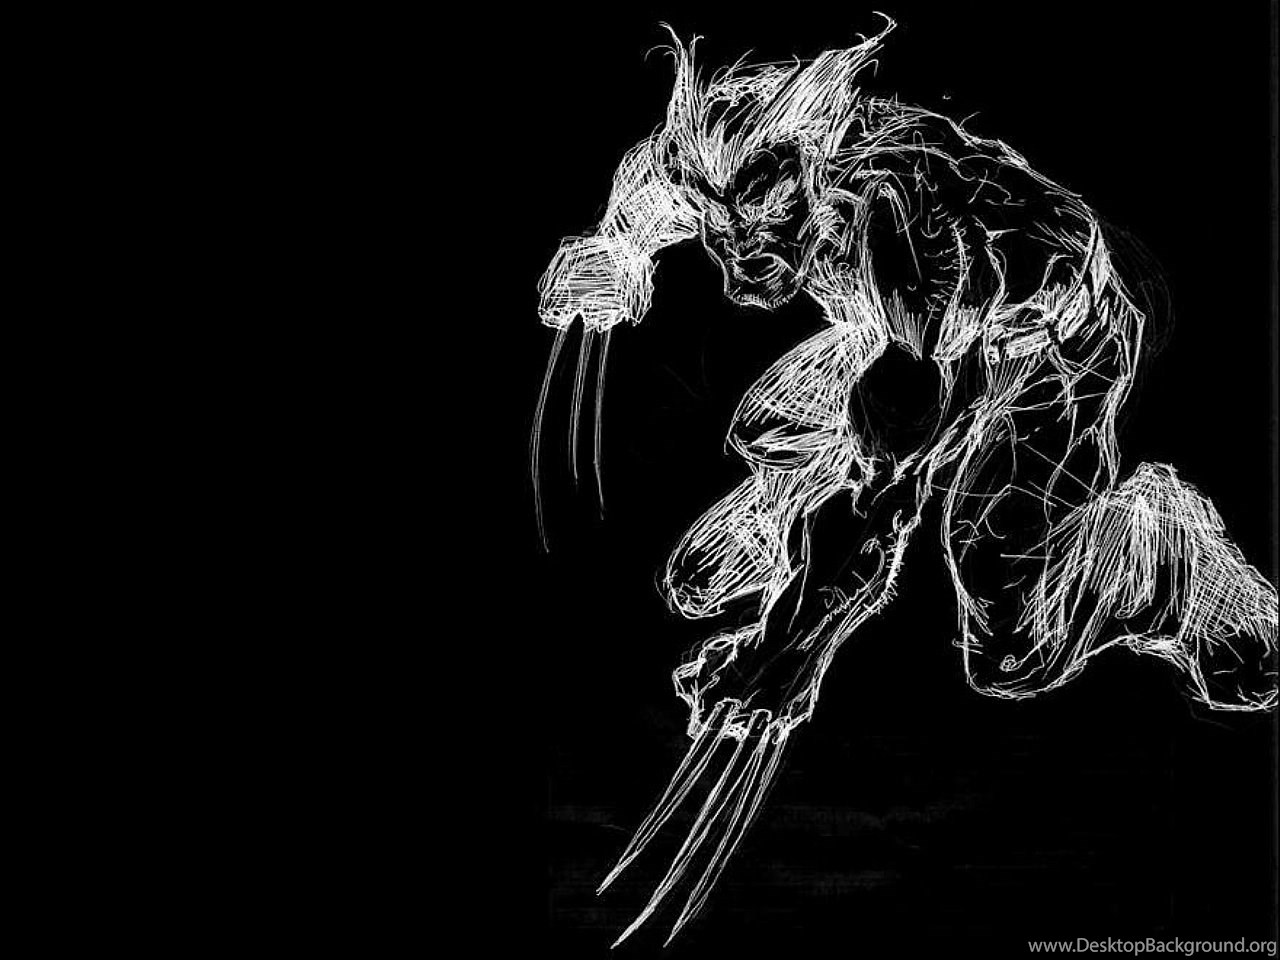 wallpapers hd 1080p black and white wolverine desktop background